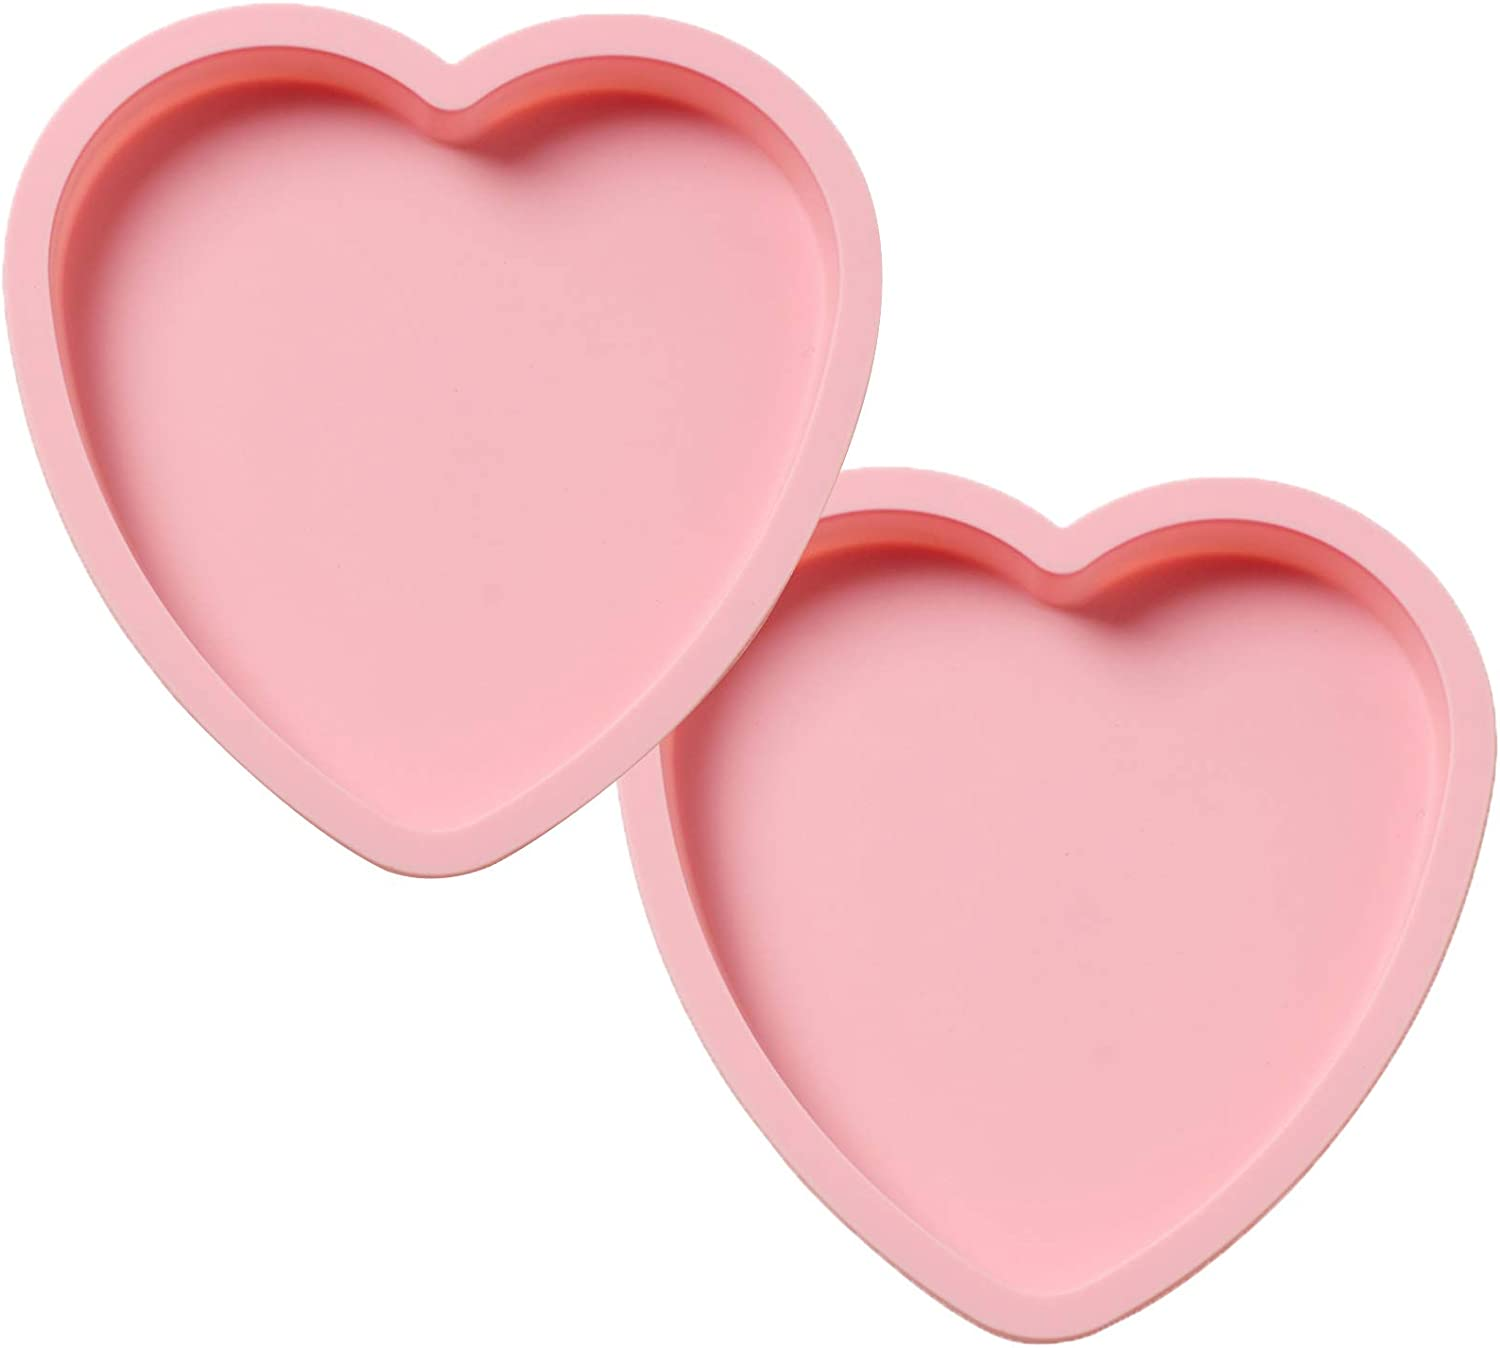 Heart Mold-2 Pcs Silicone Mold For Making Chocolate, Cake,Jelly, Pudding, Mousse, Candies, Muffin, Dessert, Ice Cubes,Soap, Easy Release, Reusable and Non-Stick, Heart Love Shape